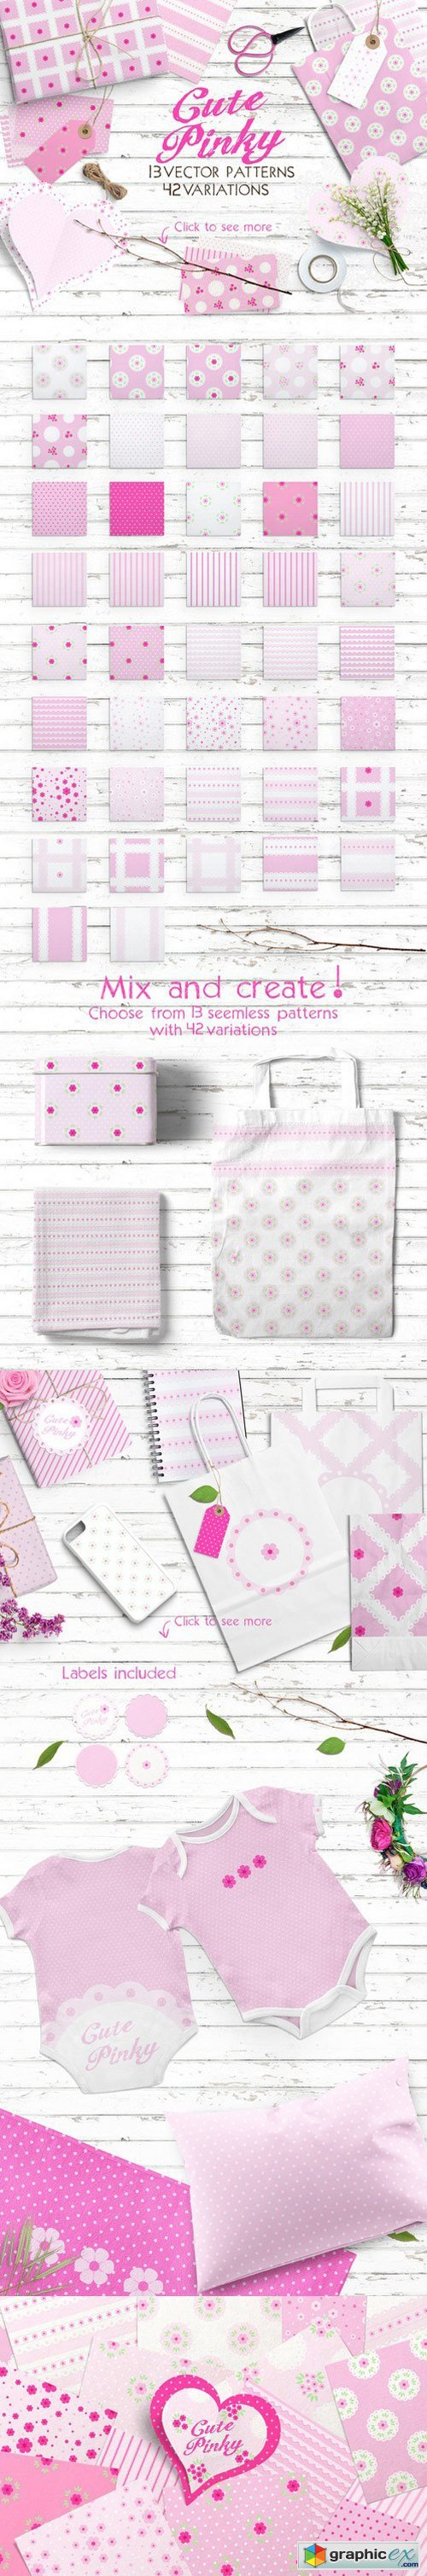 Cute Pinky Patterns Pack